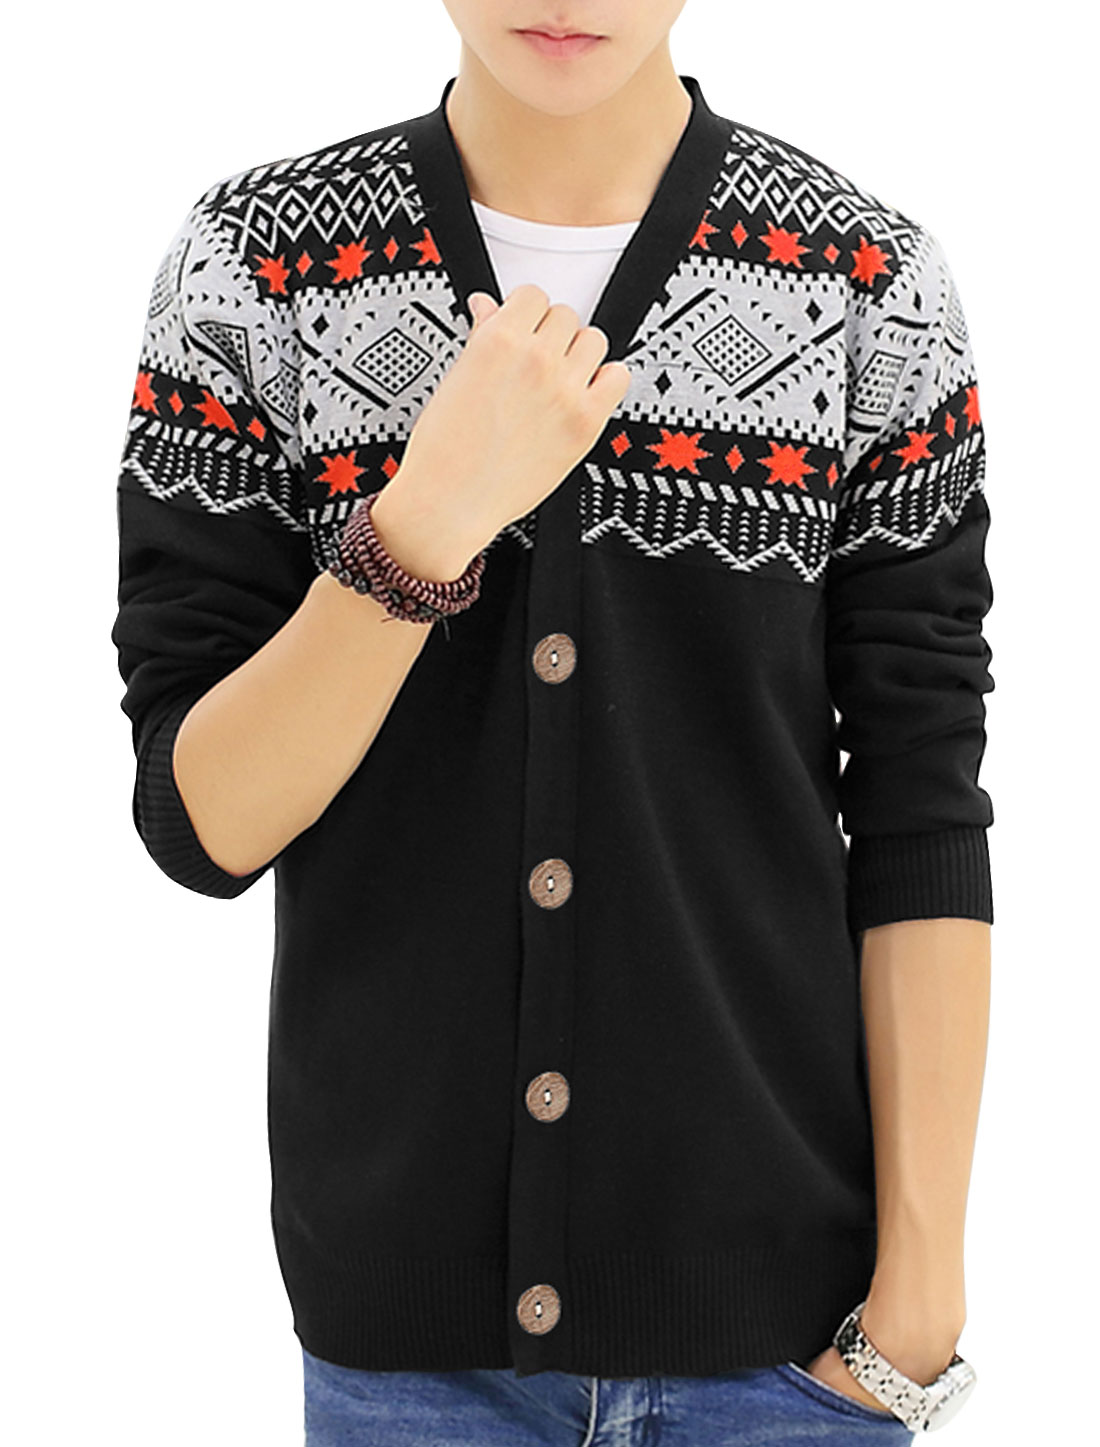 Men Ribbed Cuffs w Hem Geometric Novelty Print Casual Cardigan Black S